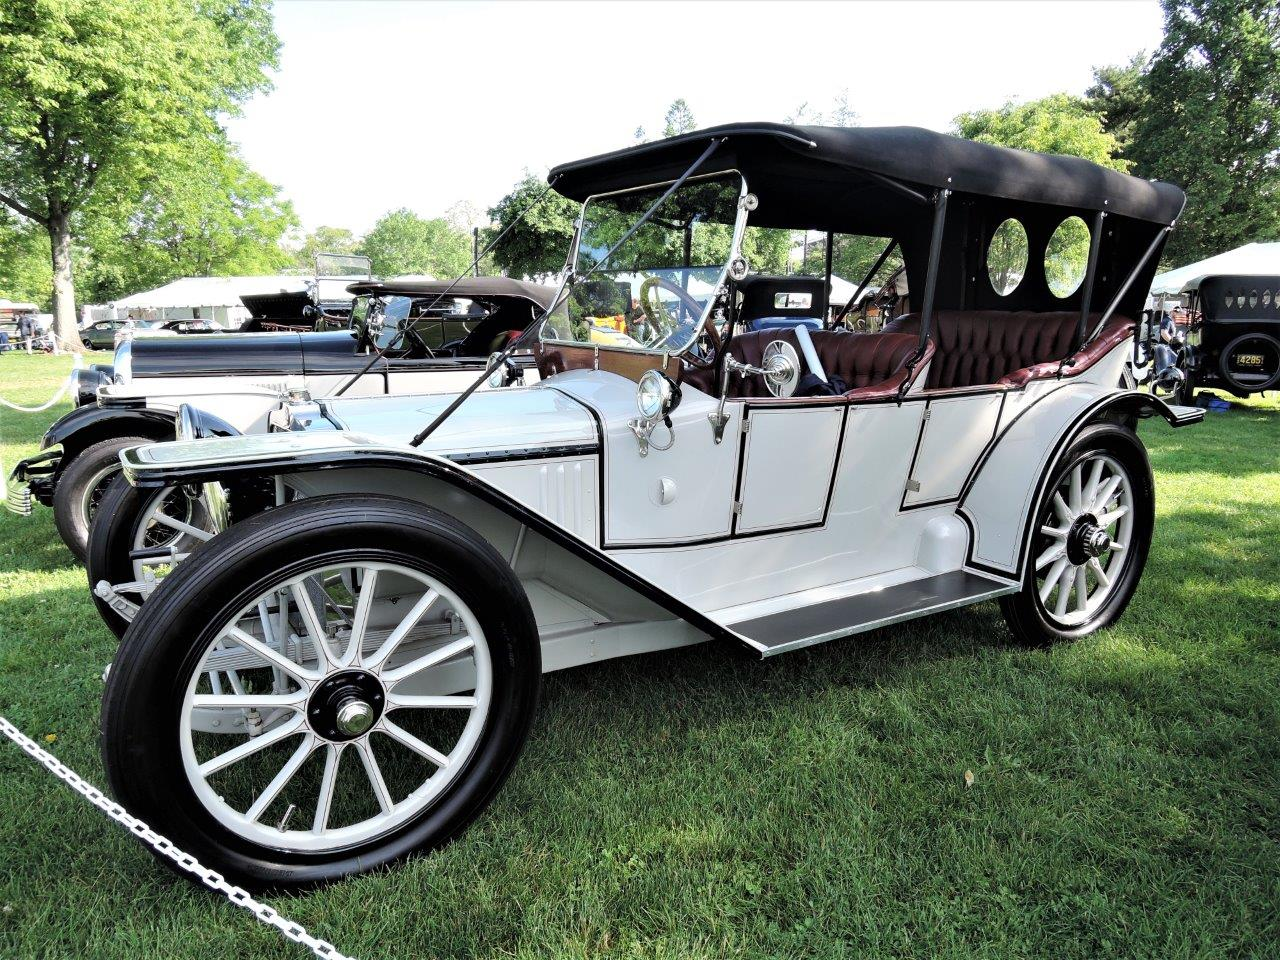 white 1913 American Underslung owned by Wayne Carini of Chasing Classic Cars - 2018 Greenwich Concours Americana